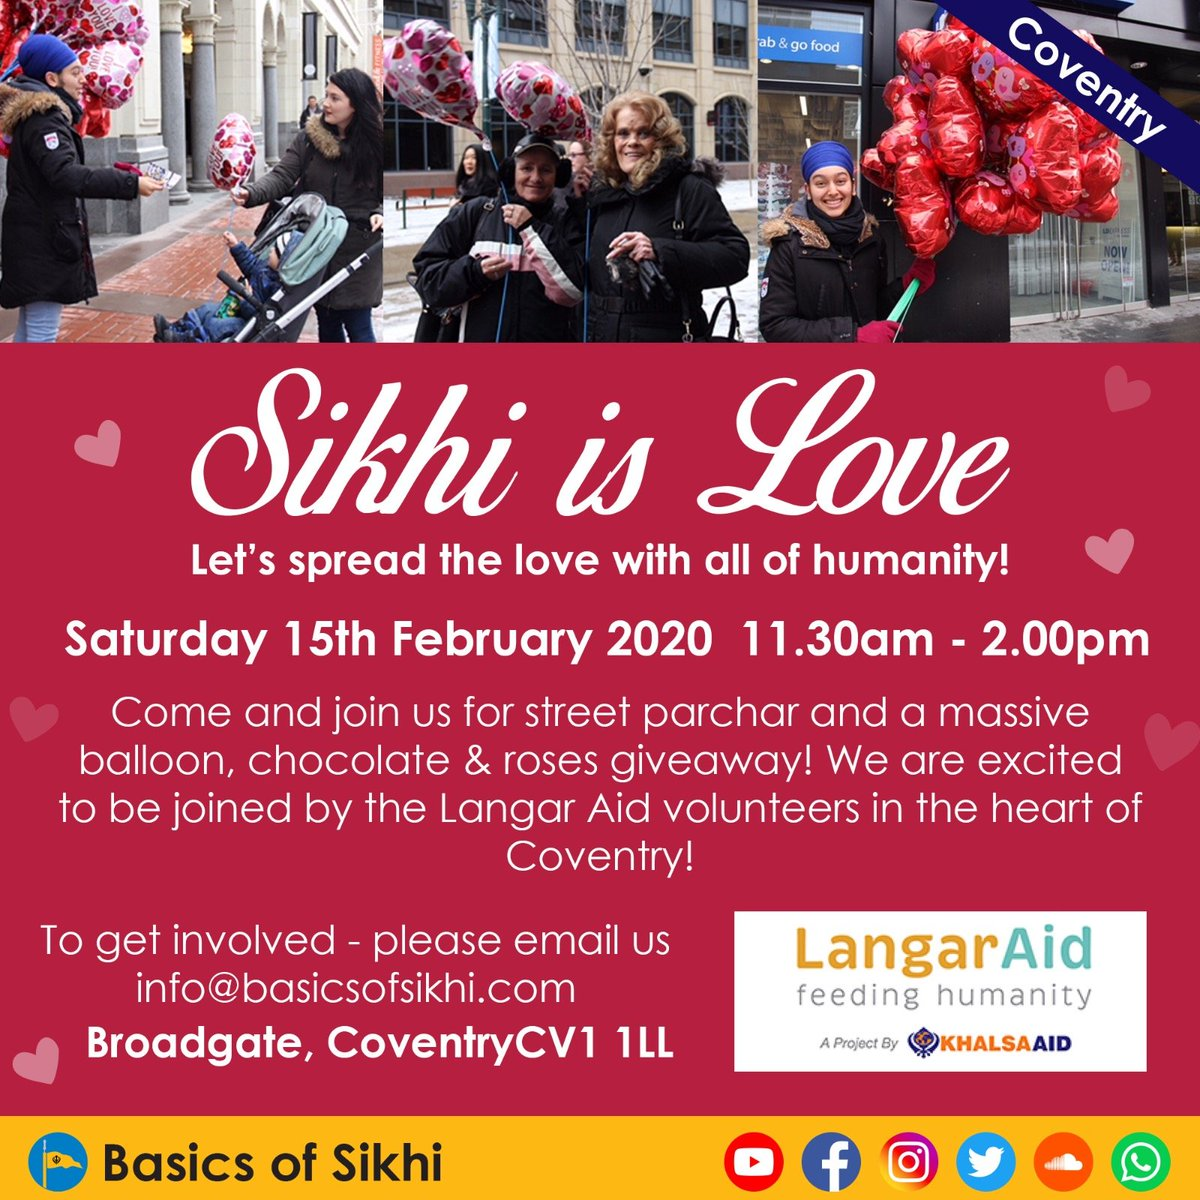 SATURDAY IN COVENTRY... Join @LangarAid to spread the love and share a gift and more!